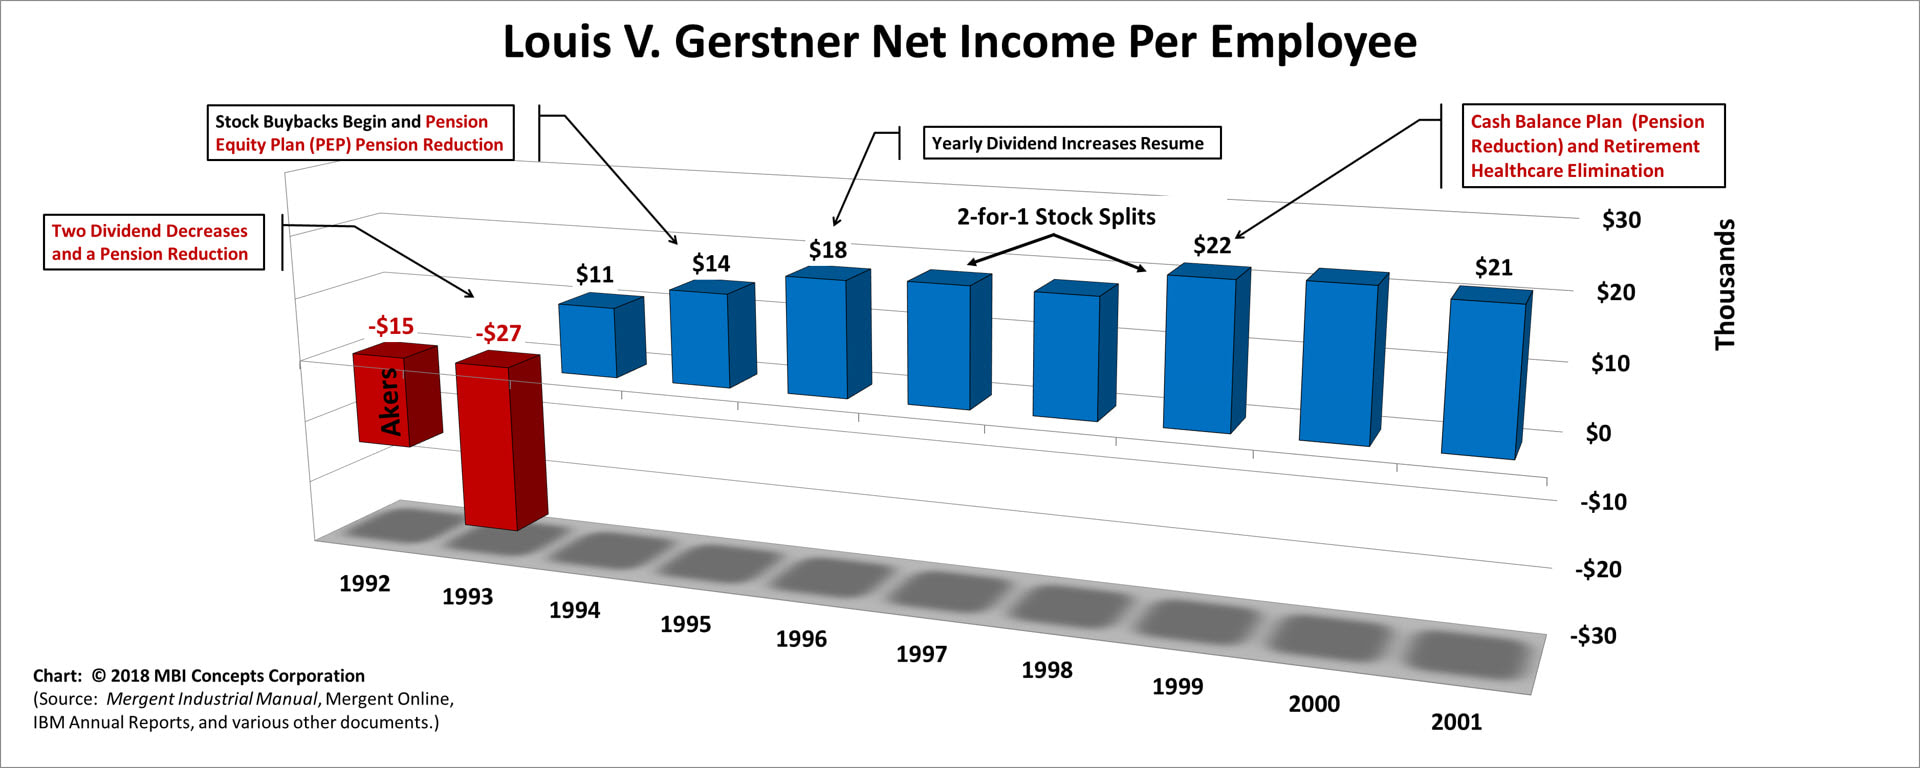 Bar chart of Louis V. Gerstner's Yearly Net Income per Employee over his 9 years as IBM's CEO from 1993 to 2001